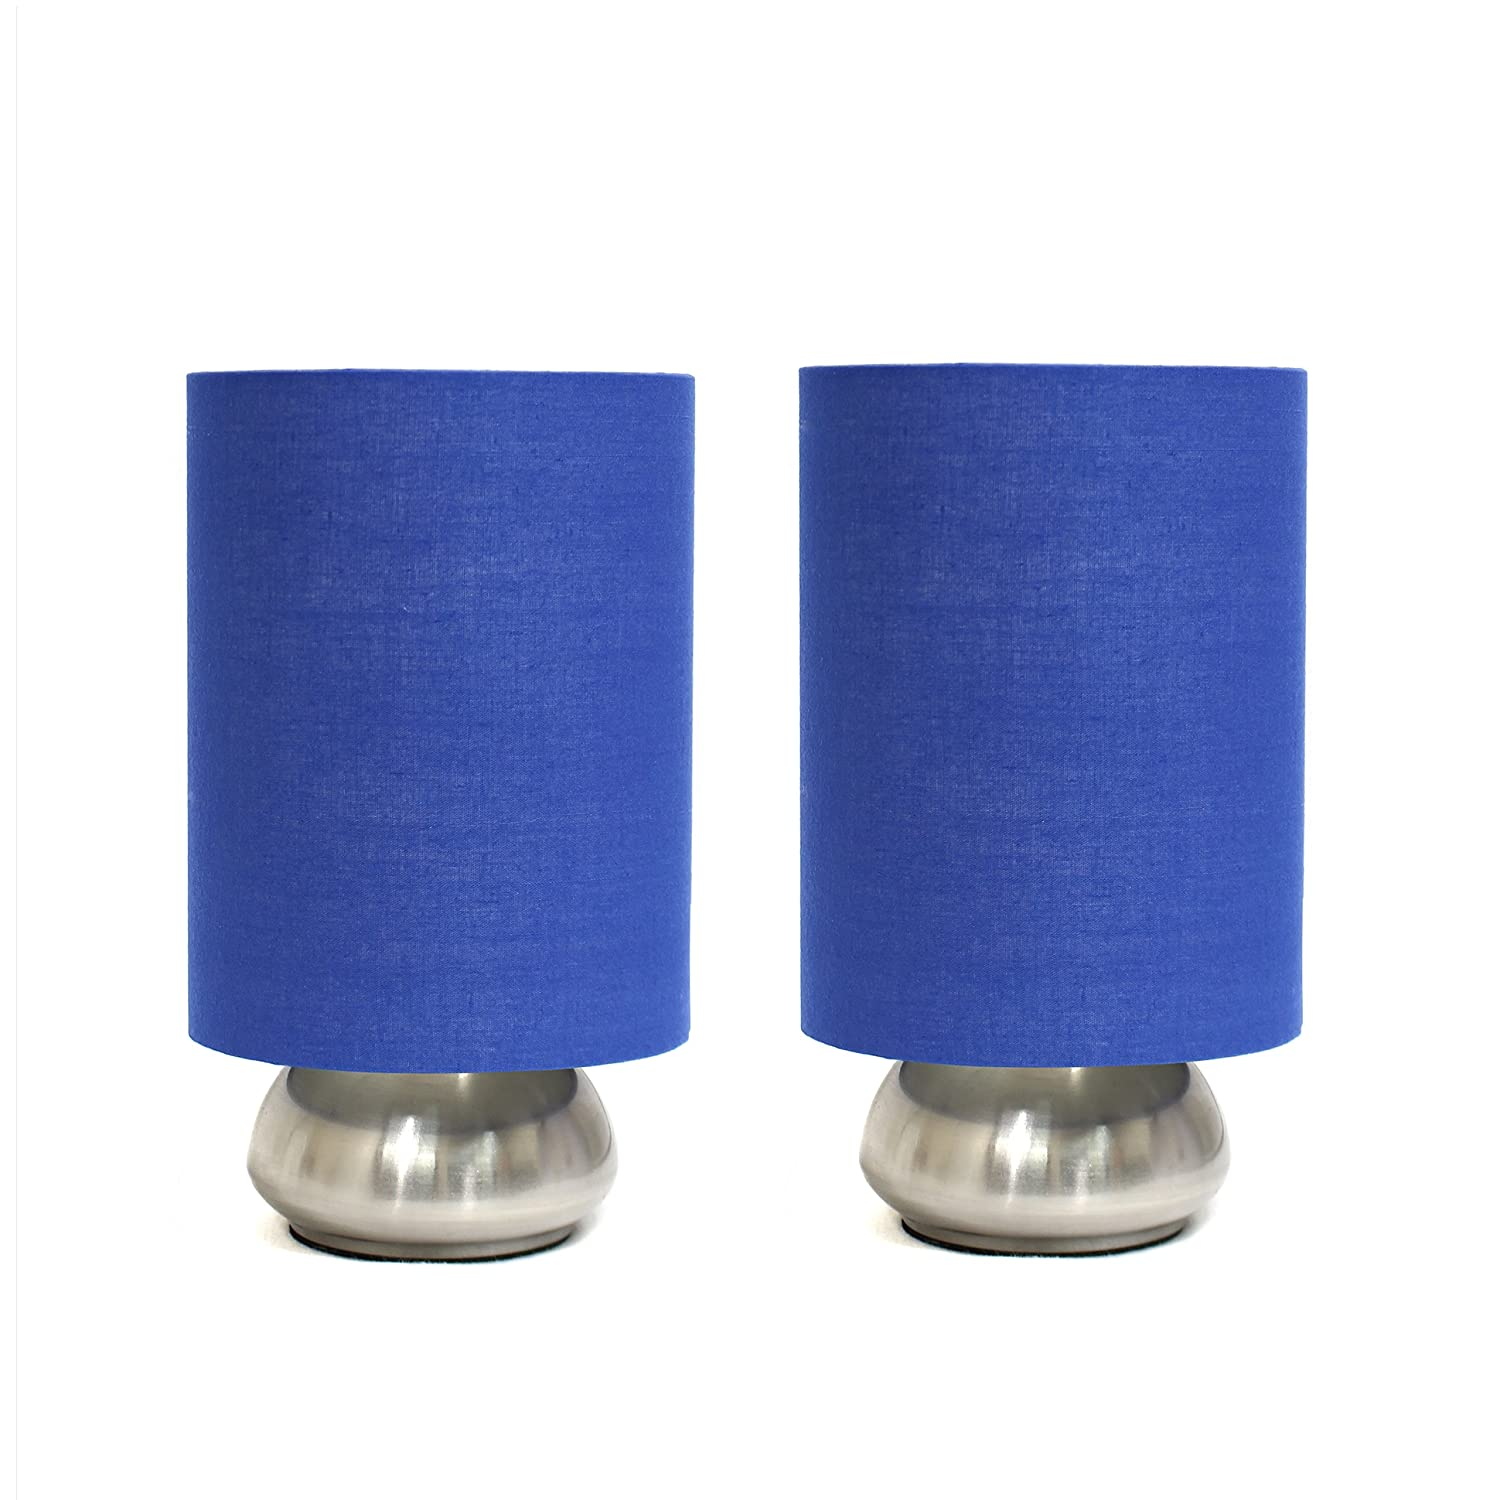 Simple Designs LT2016-BLU-2PK Gemini Brushed Nickel 2 Pack Mini Touch Lamp Set with Fabric Shades, Blue by LighTunes [並行輸入品] B00FPJ5UHE  Blue Shade